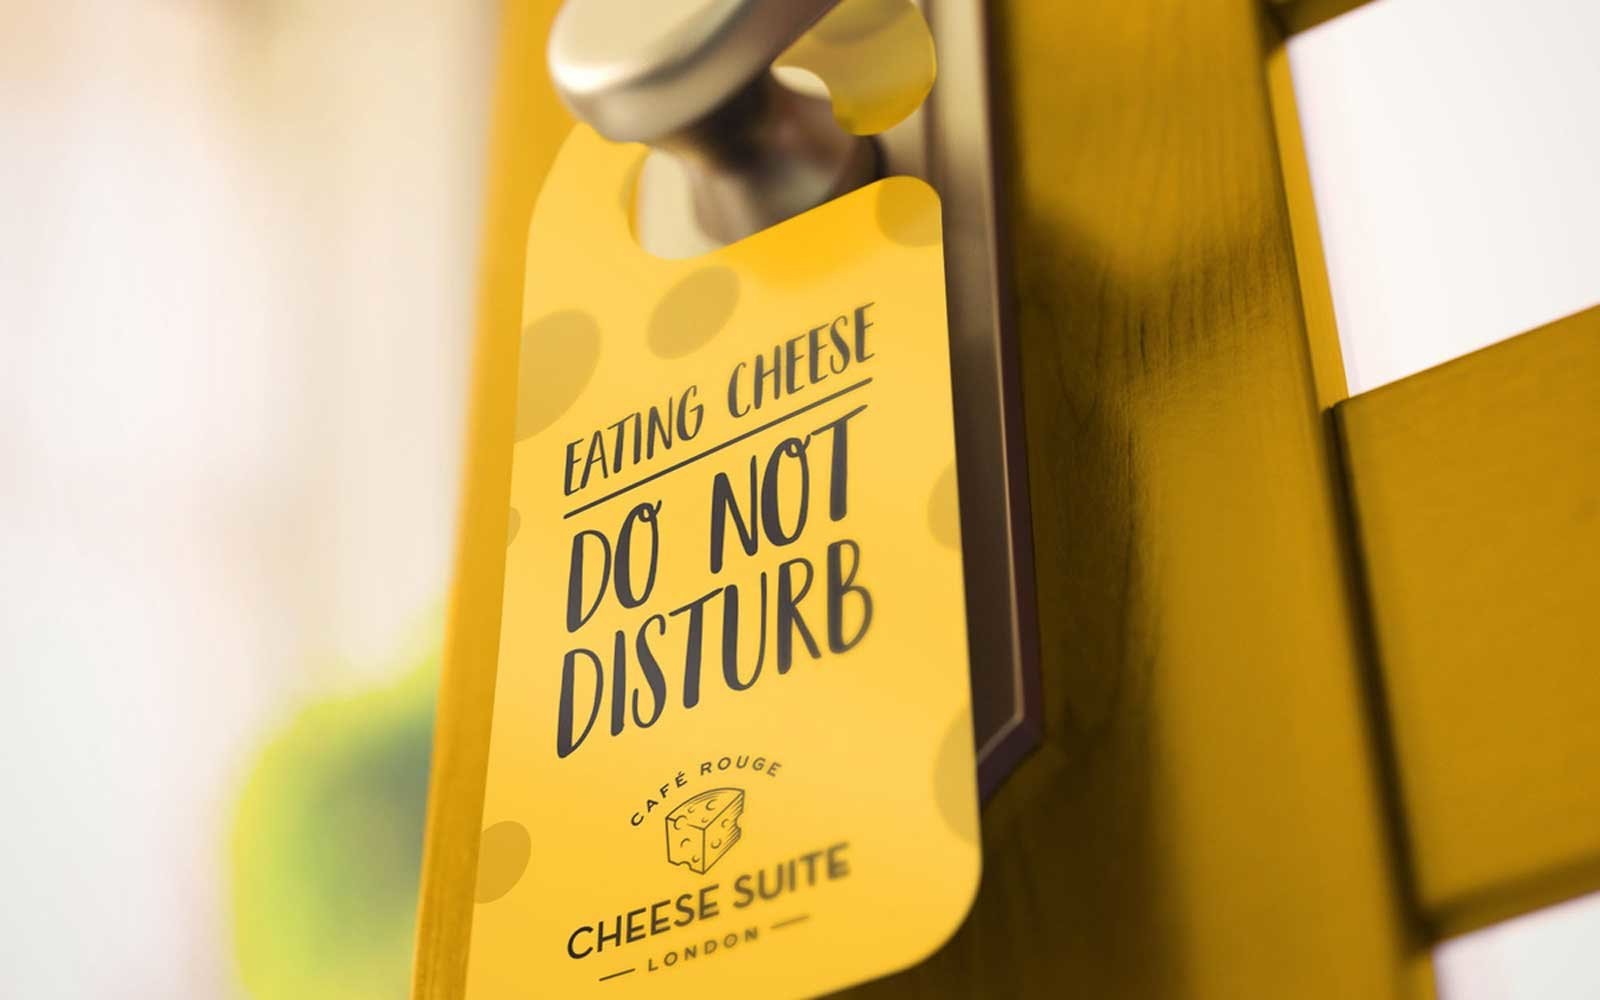 A hotel door hanger that reads 'Eating Cheese, Do not disturb'.